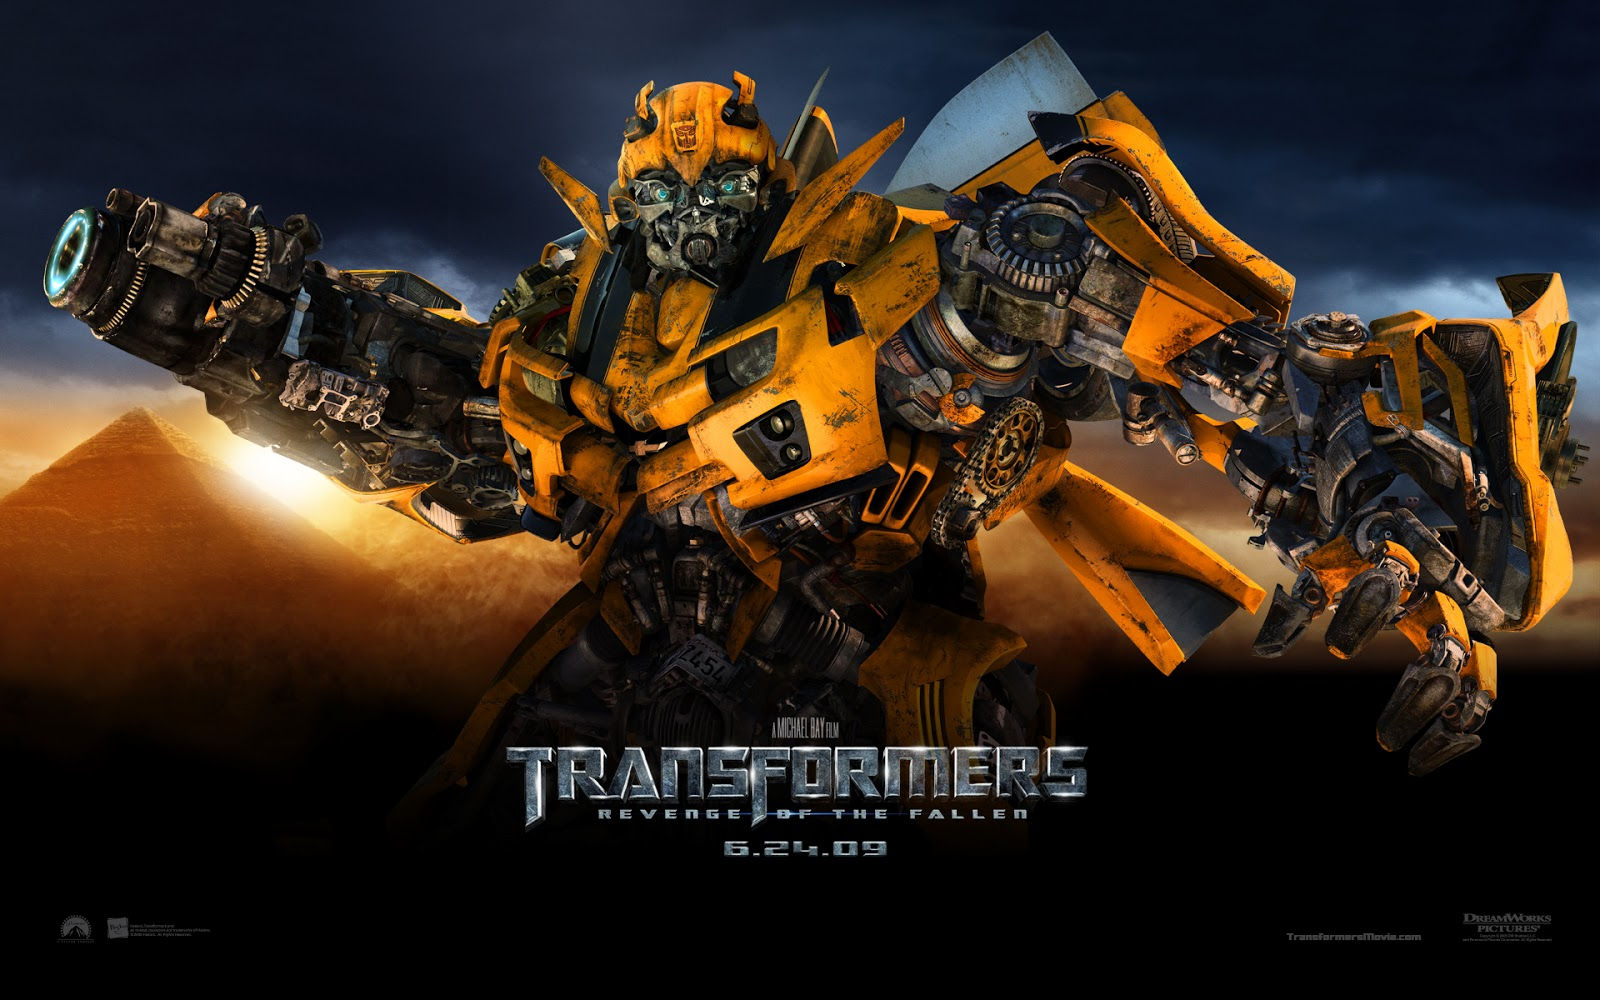 free 3d wallpapers download: transformers wallpaper, transformer